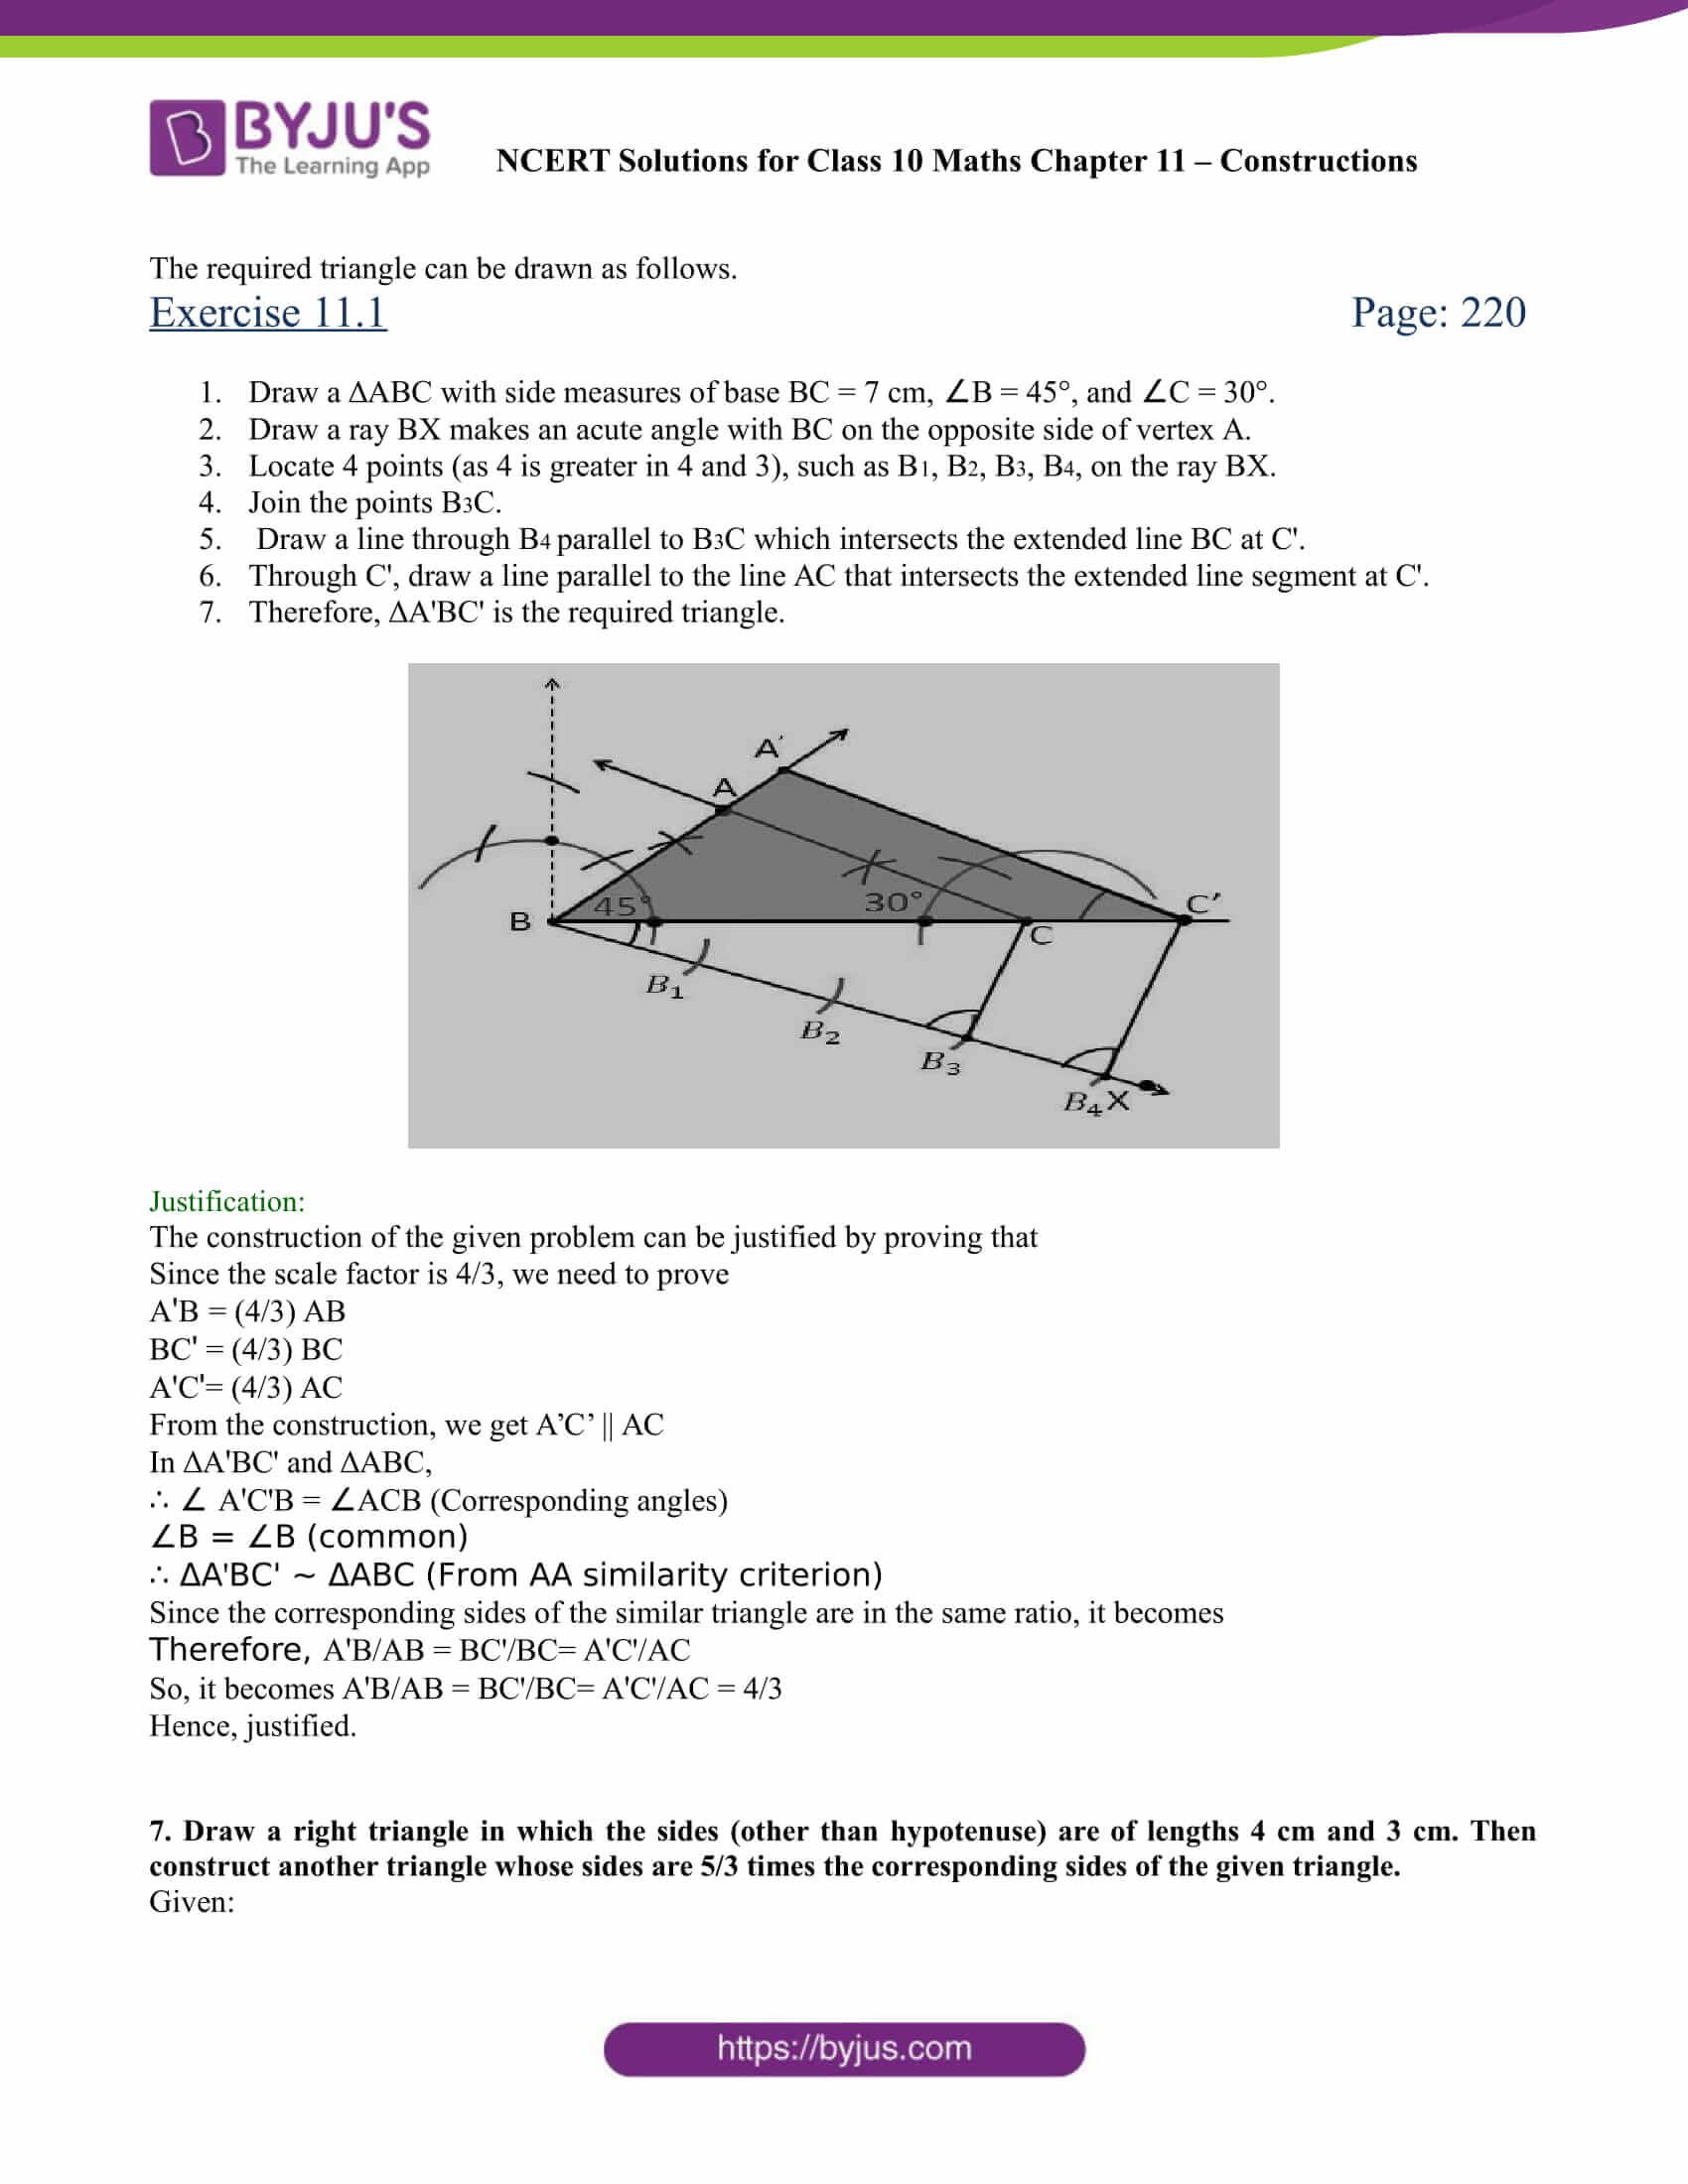 NCERT Solutions for class 10 chapter 11 Constructions Part 7